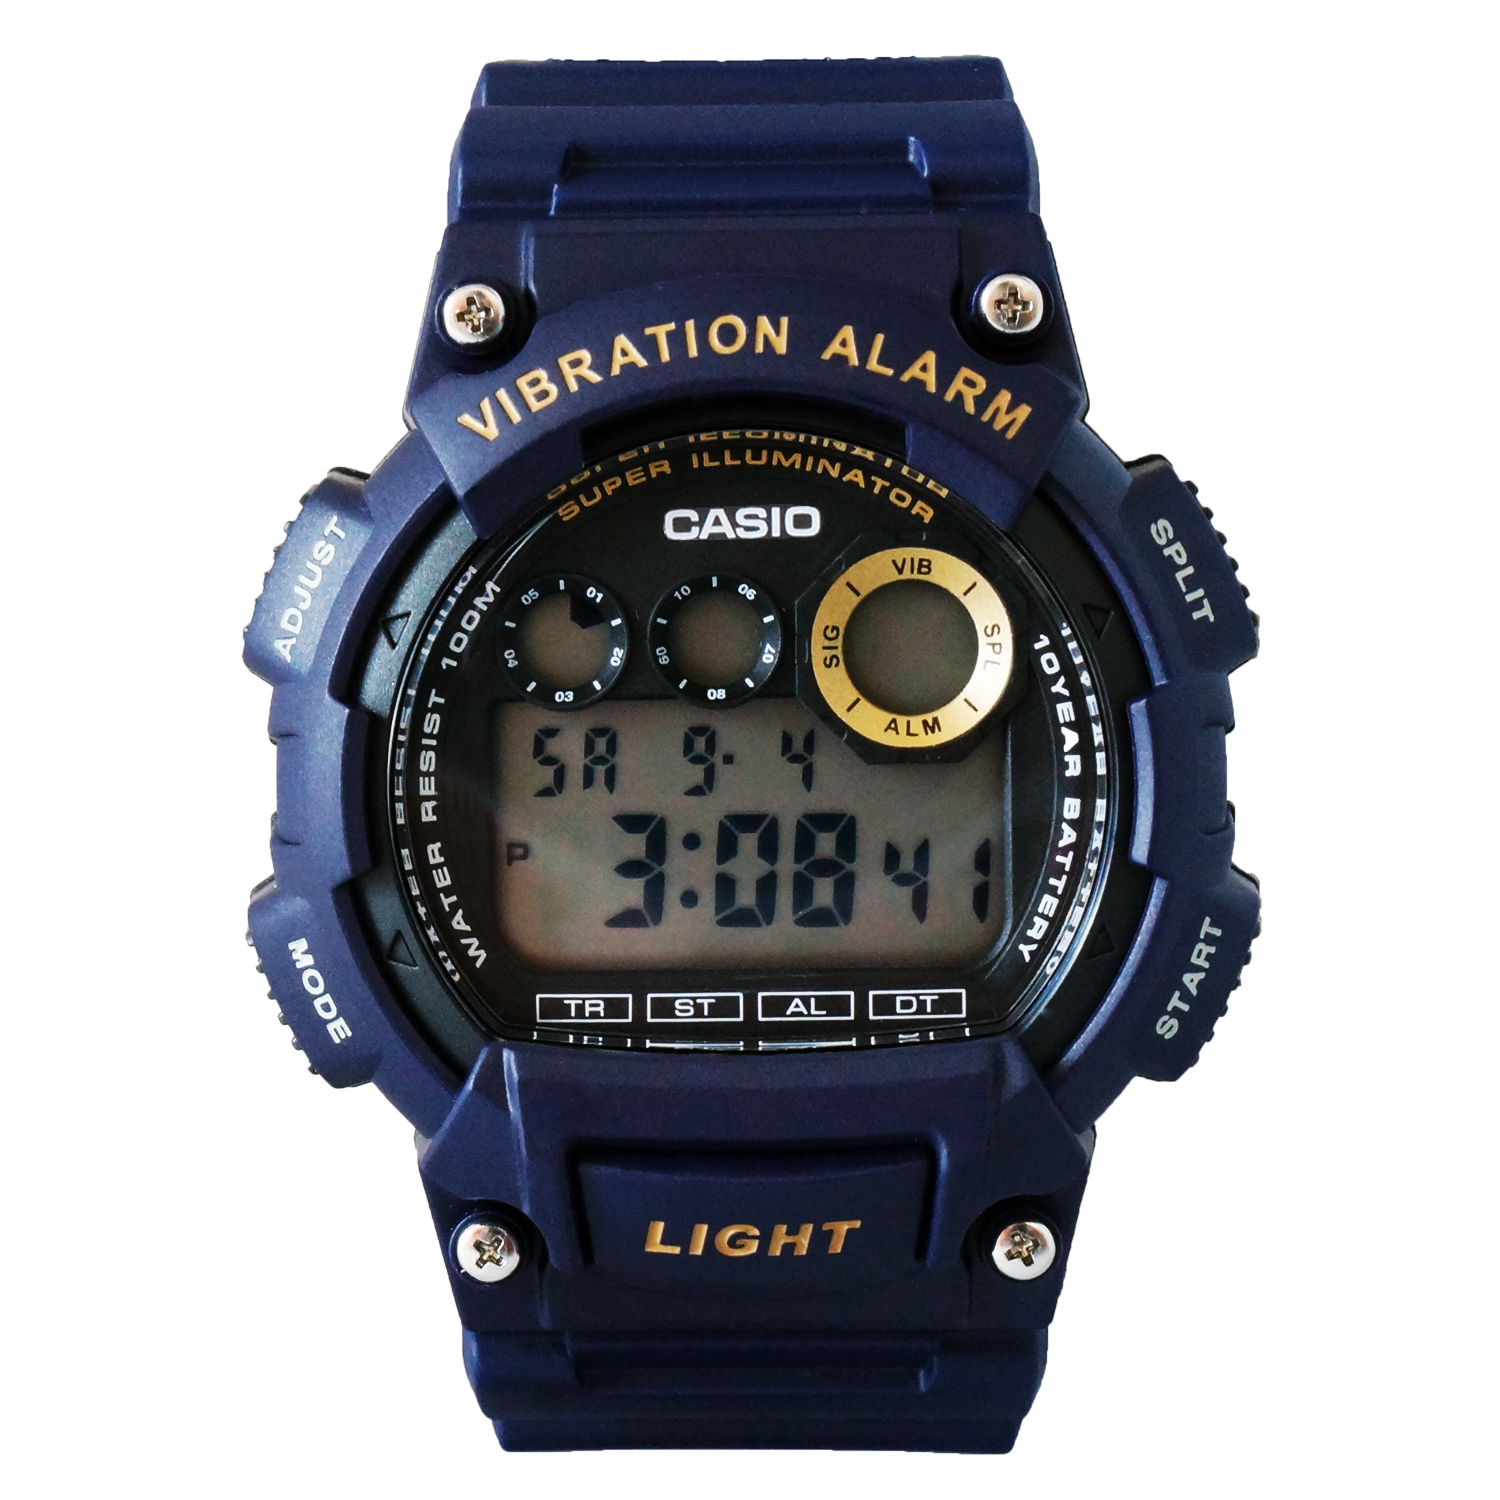 Casio Men's Viabration Alarm Multi-Function Chrono Digital Sports Watch - W735H